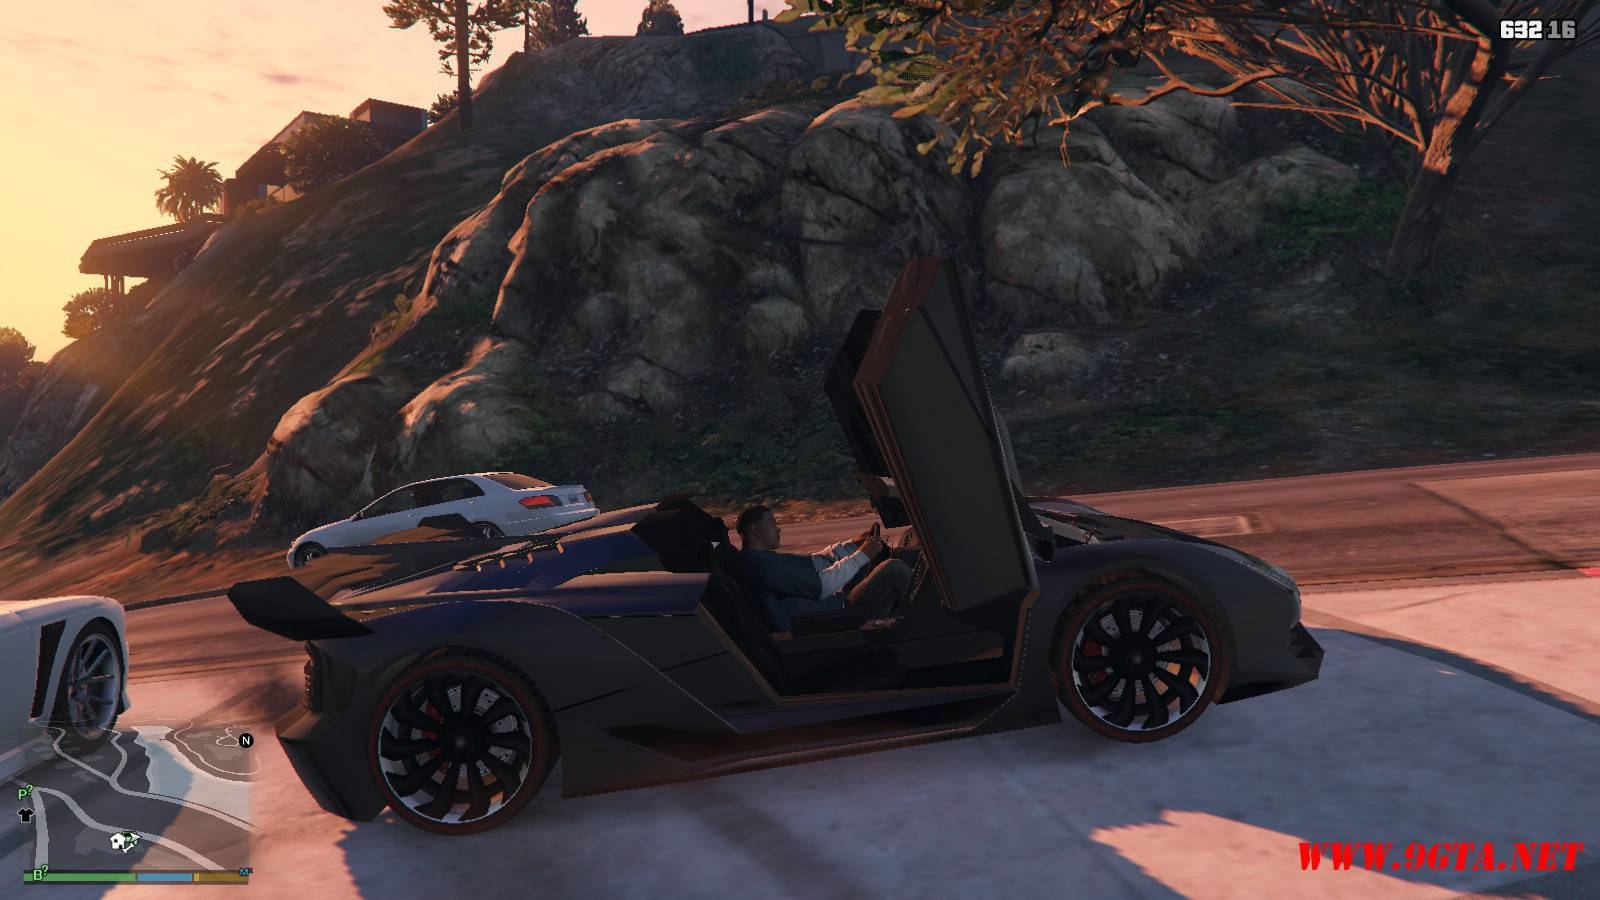 Pegassi Zentorno Roadster Mod For GTA5 (13)